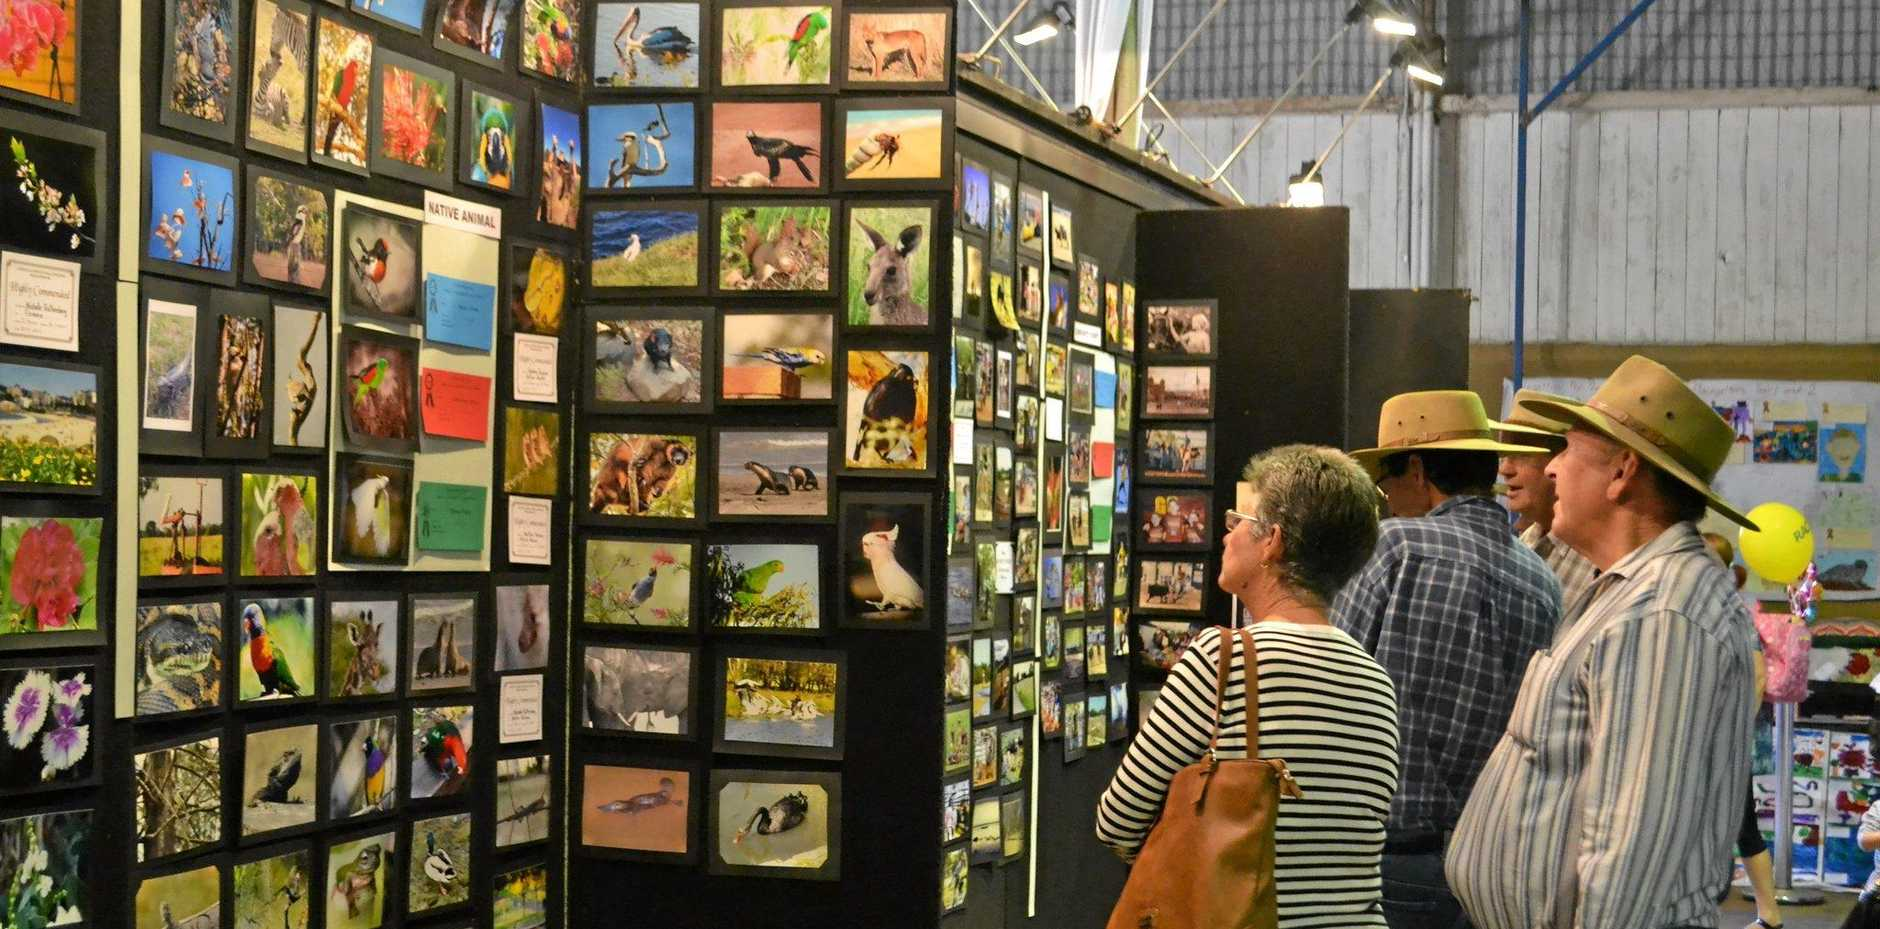 HAPPY SNAPS: Chinchilla Show patrons admire the photography.